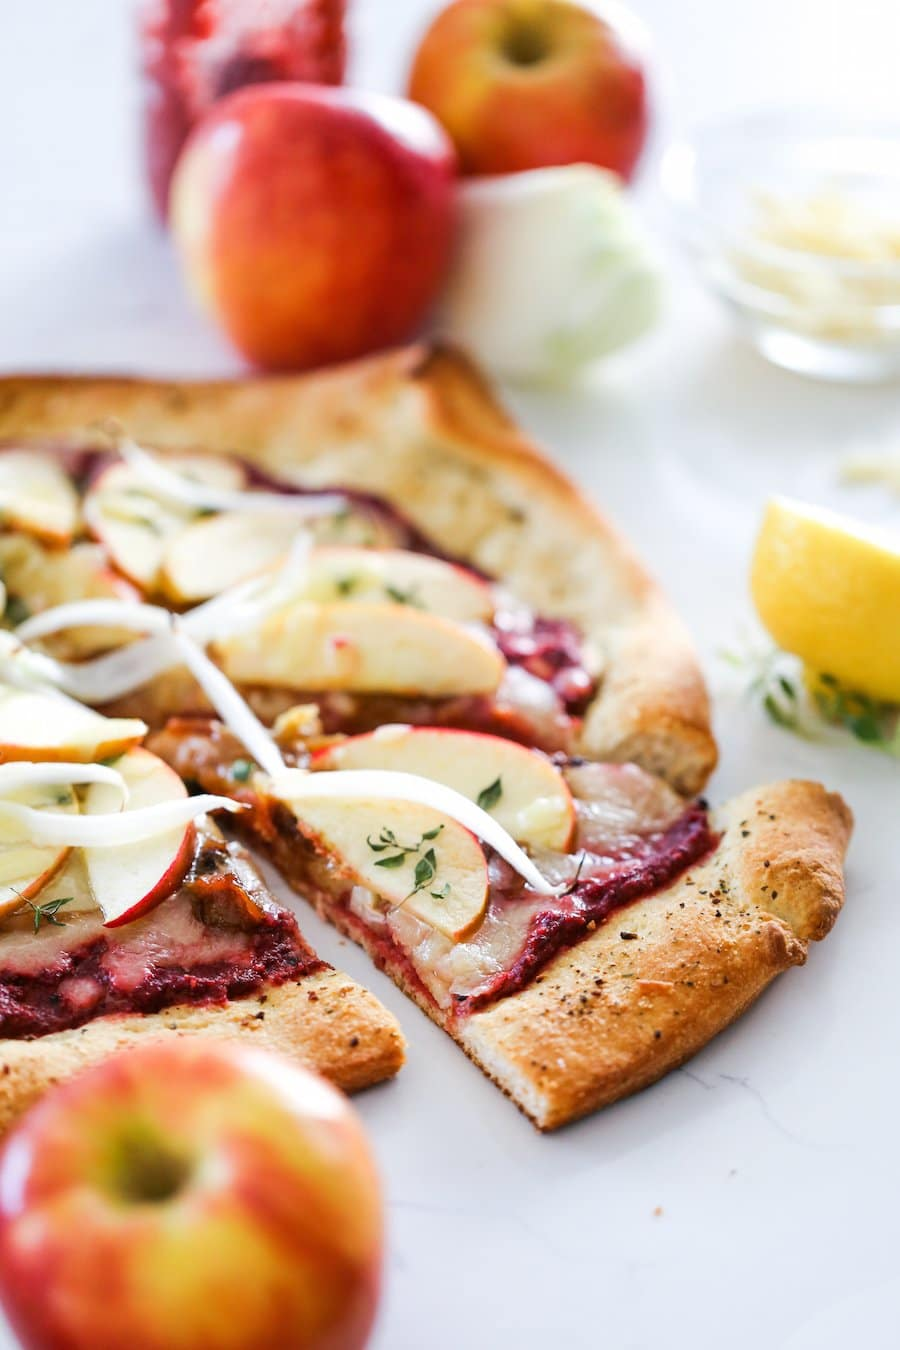 Apple Beet and Caramelized Onion Pizza // Salty Canary